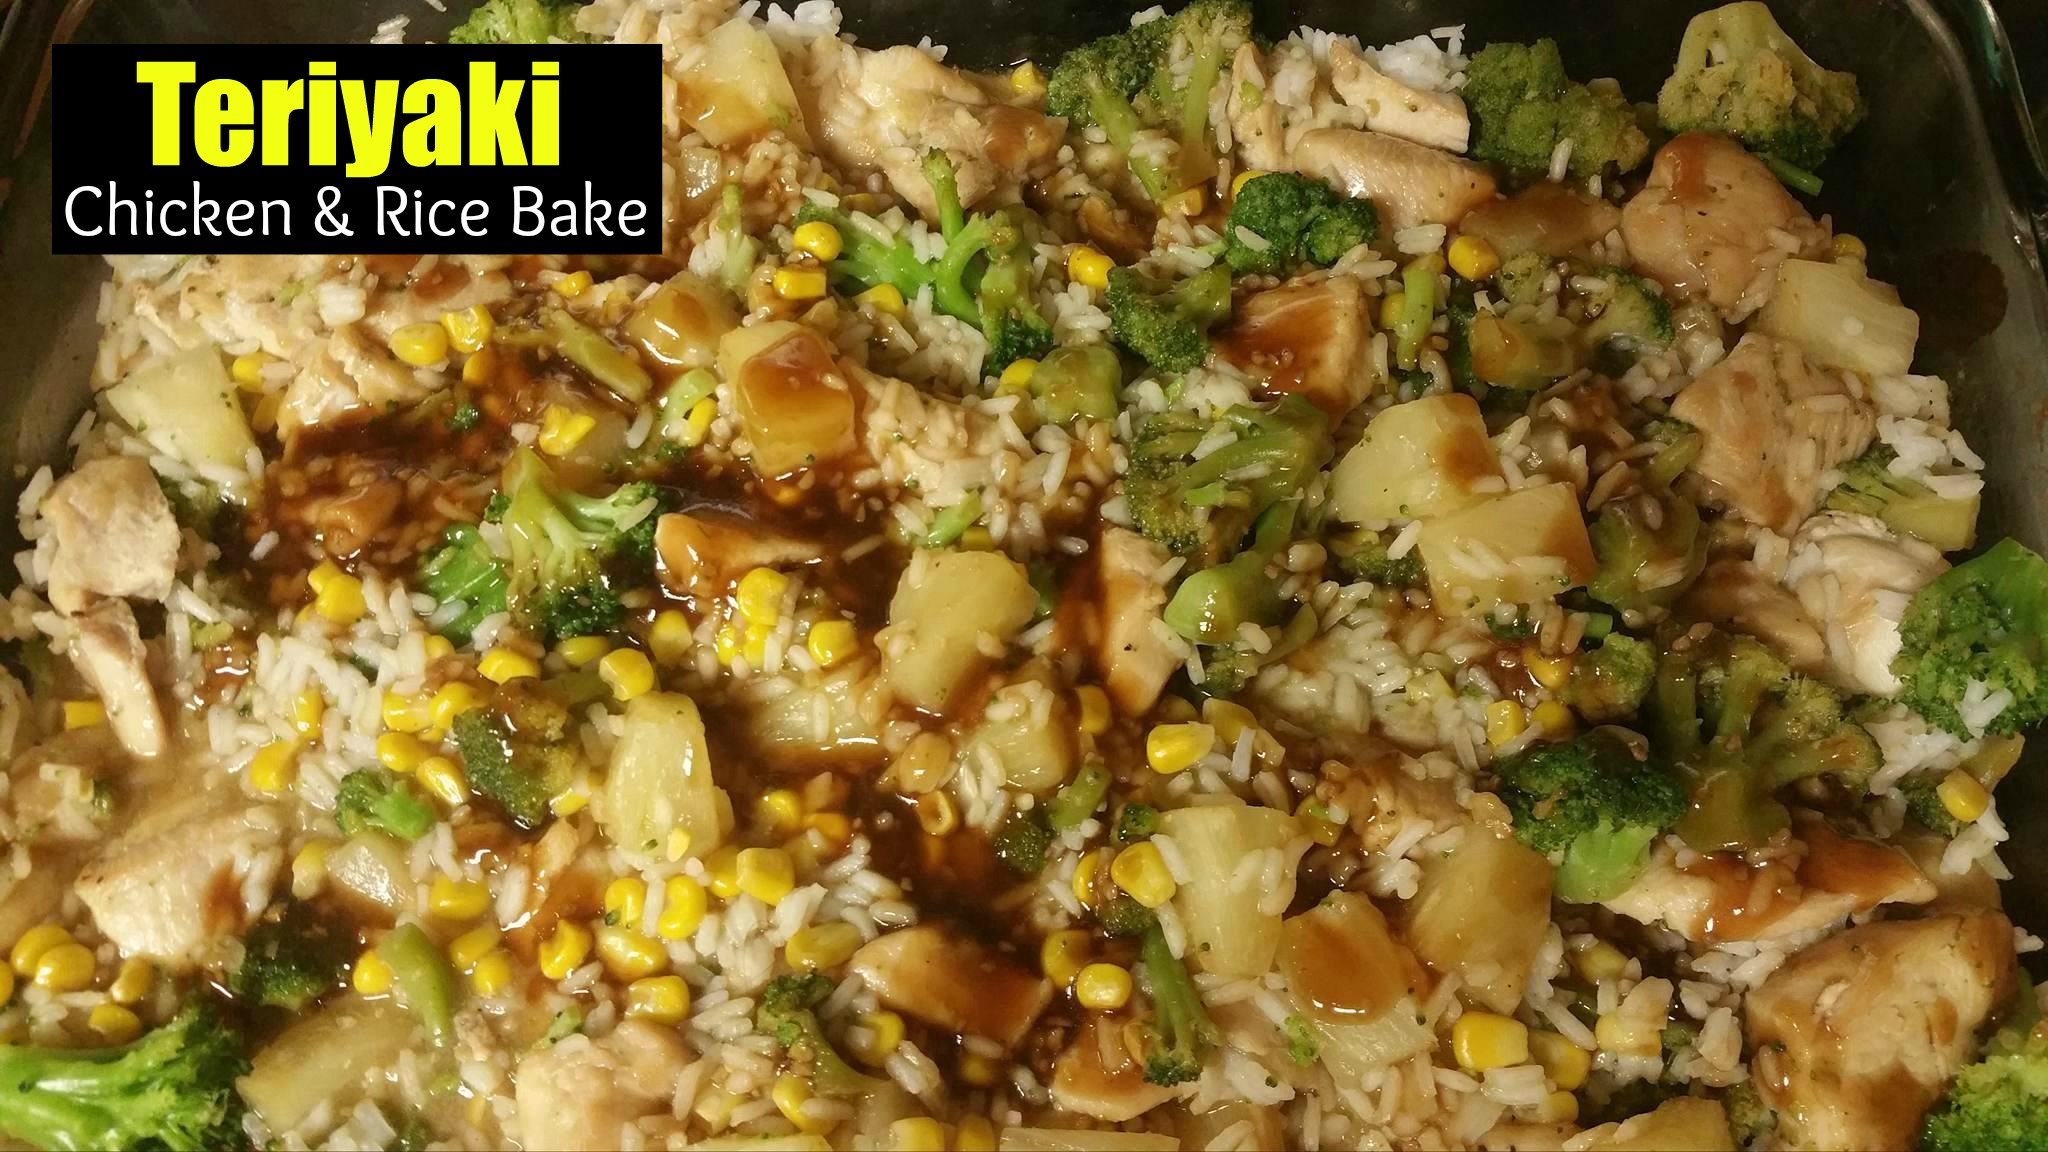 Teriyaki Chicken & Rice Bake